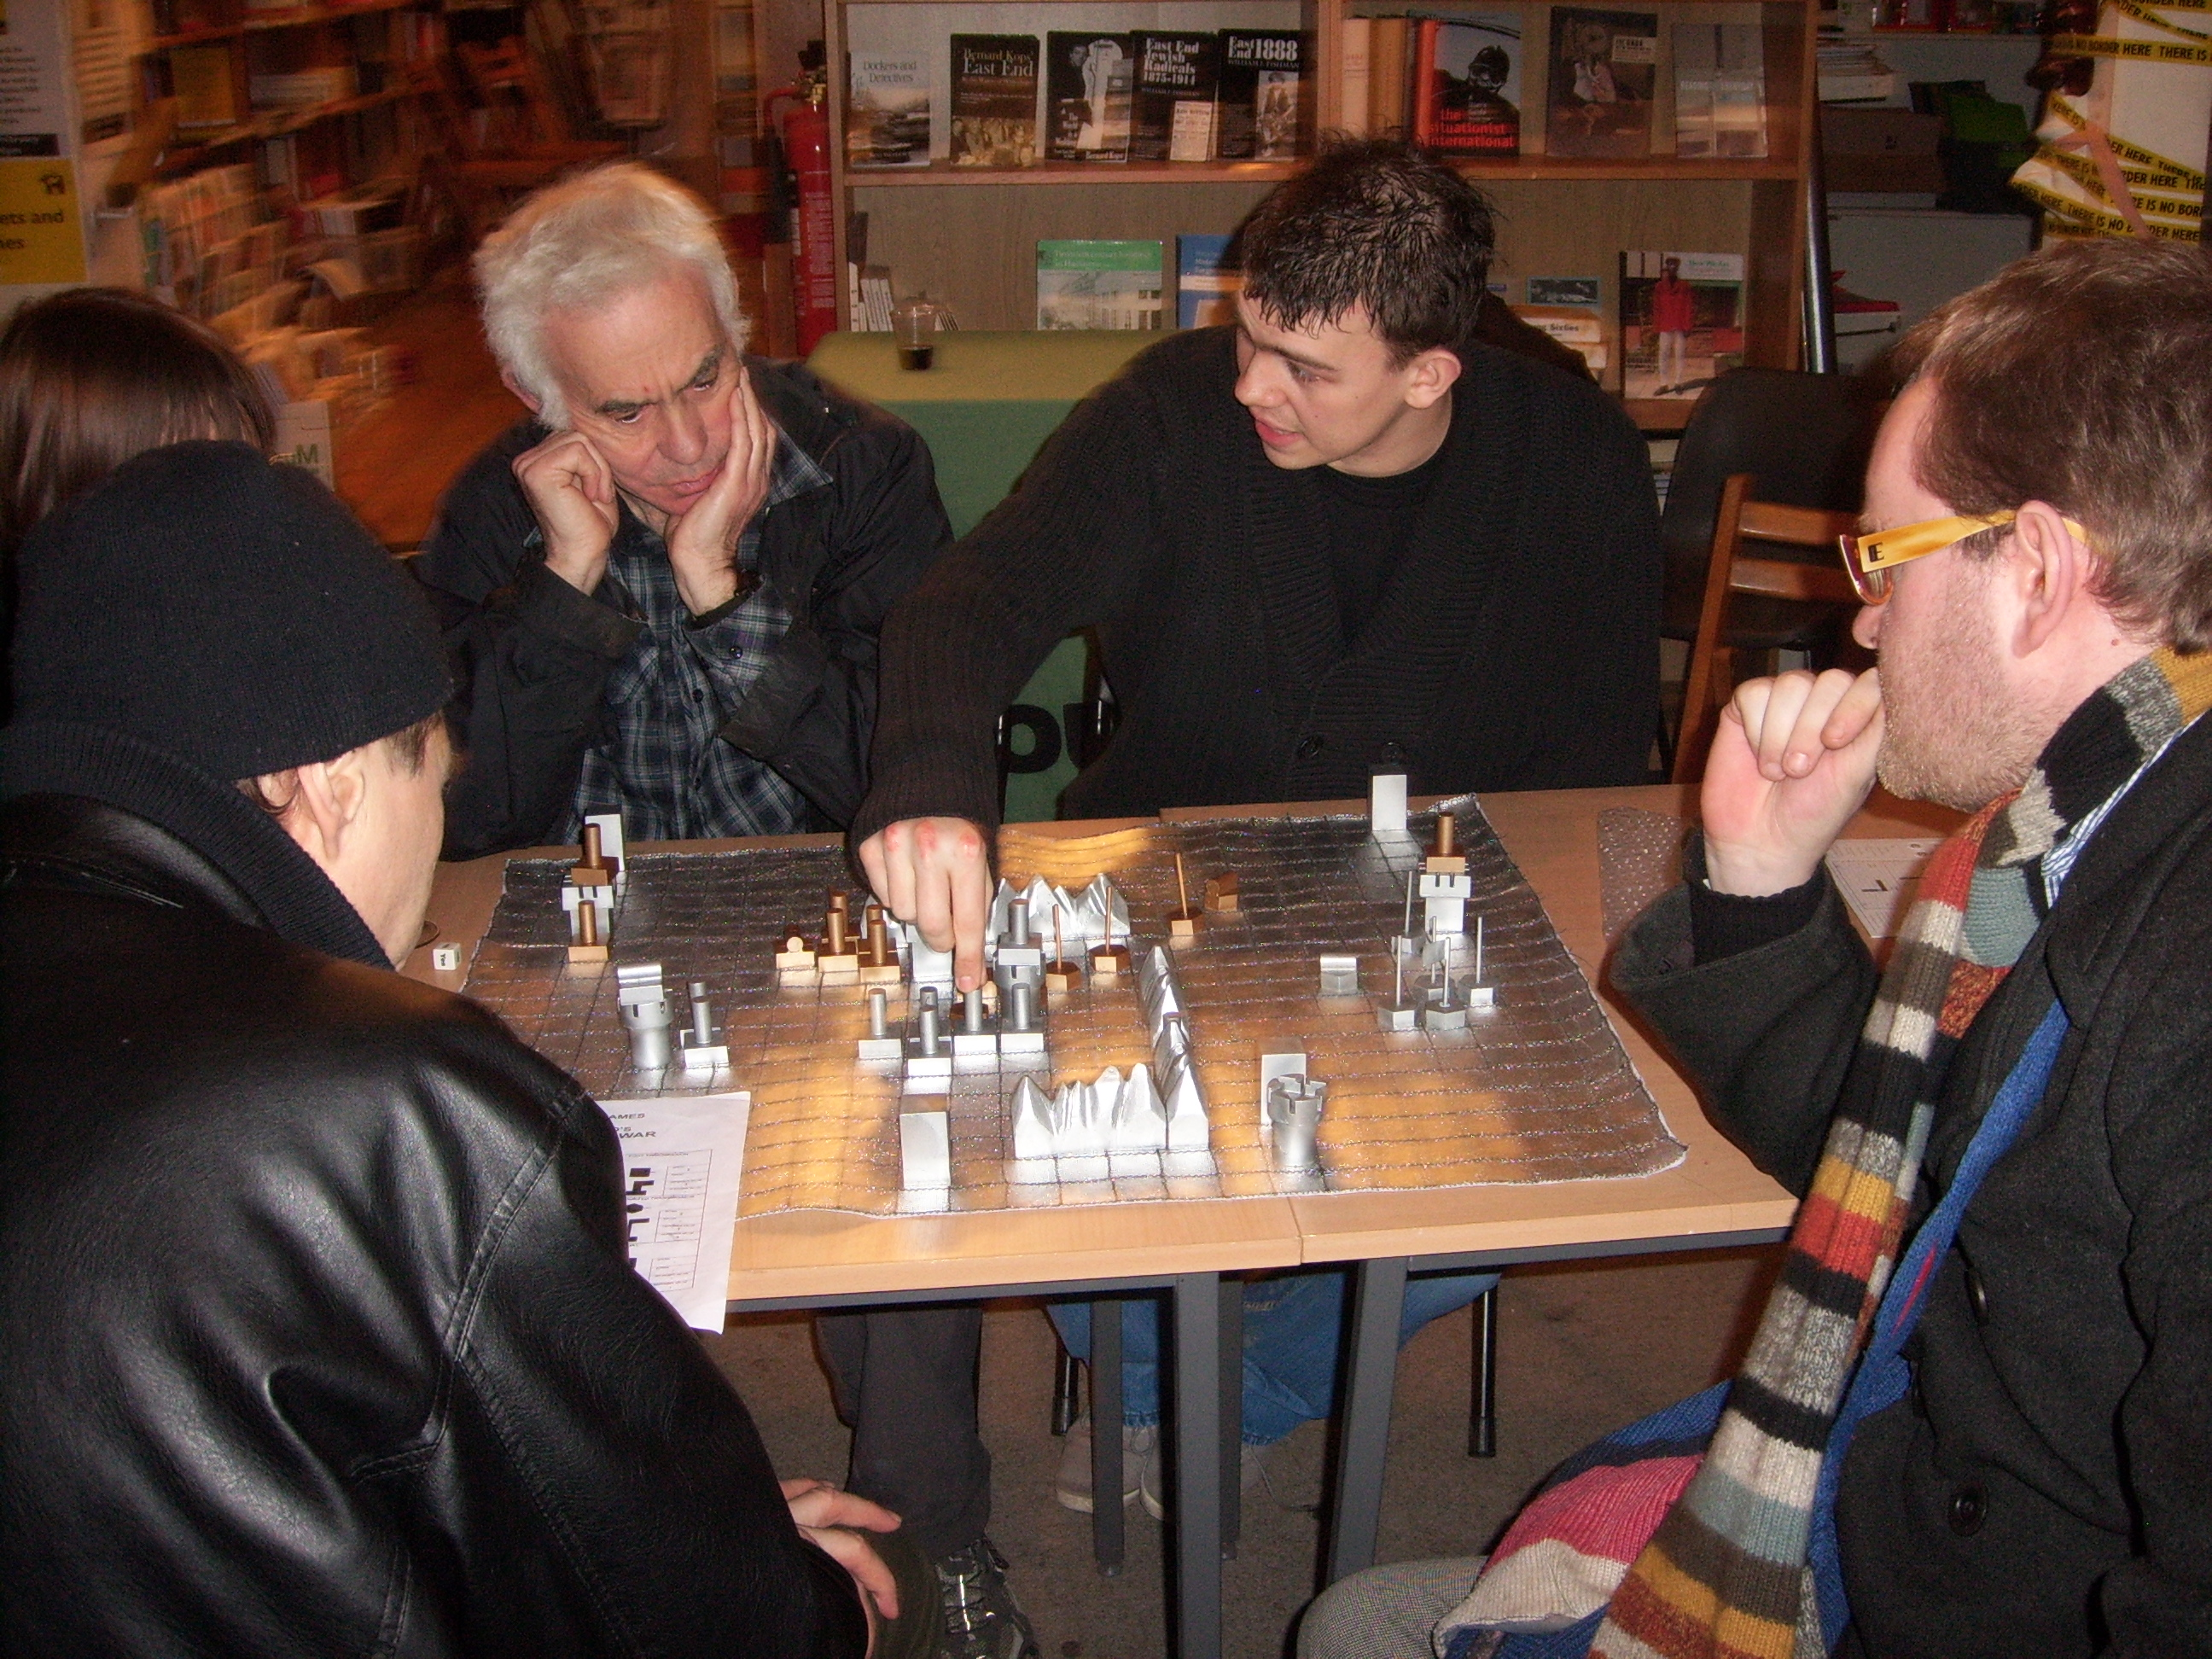 games_players_3